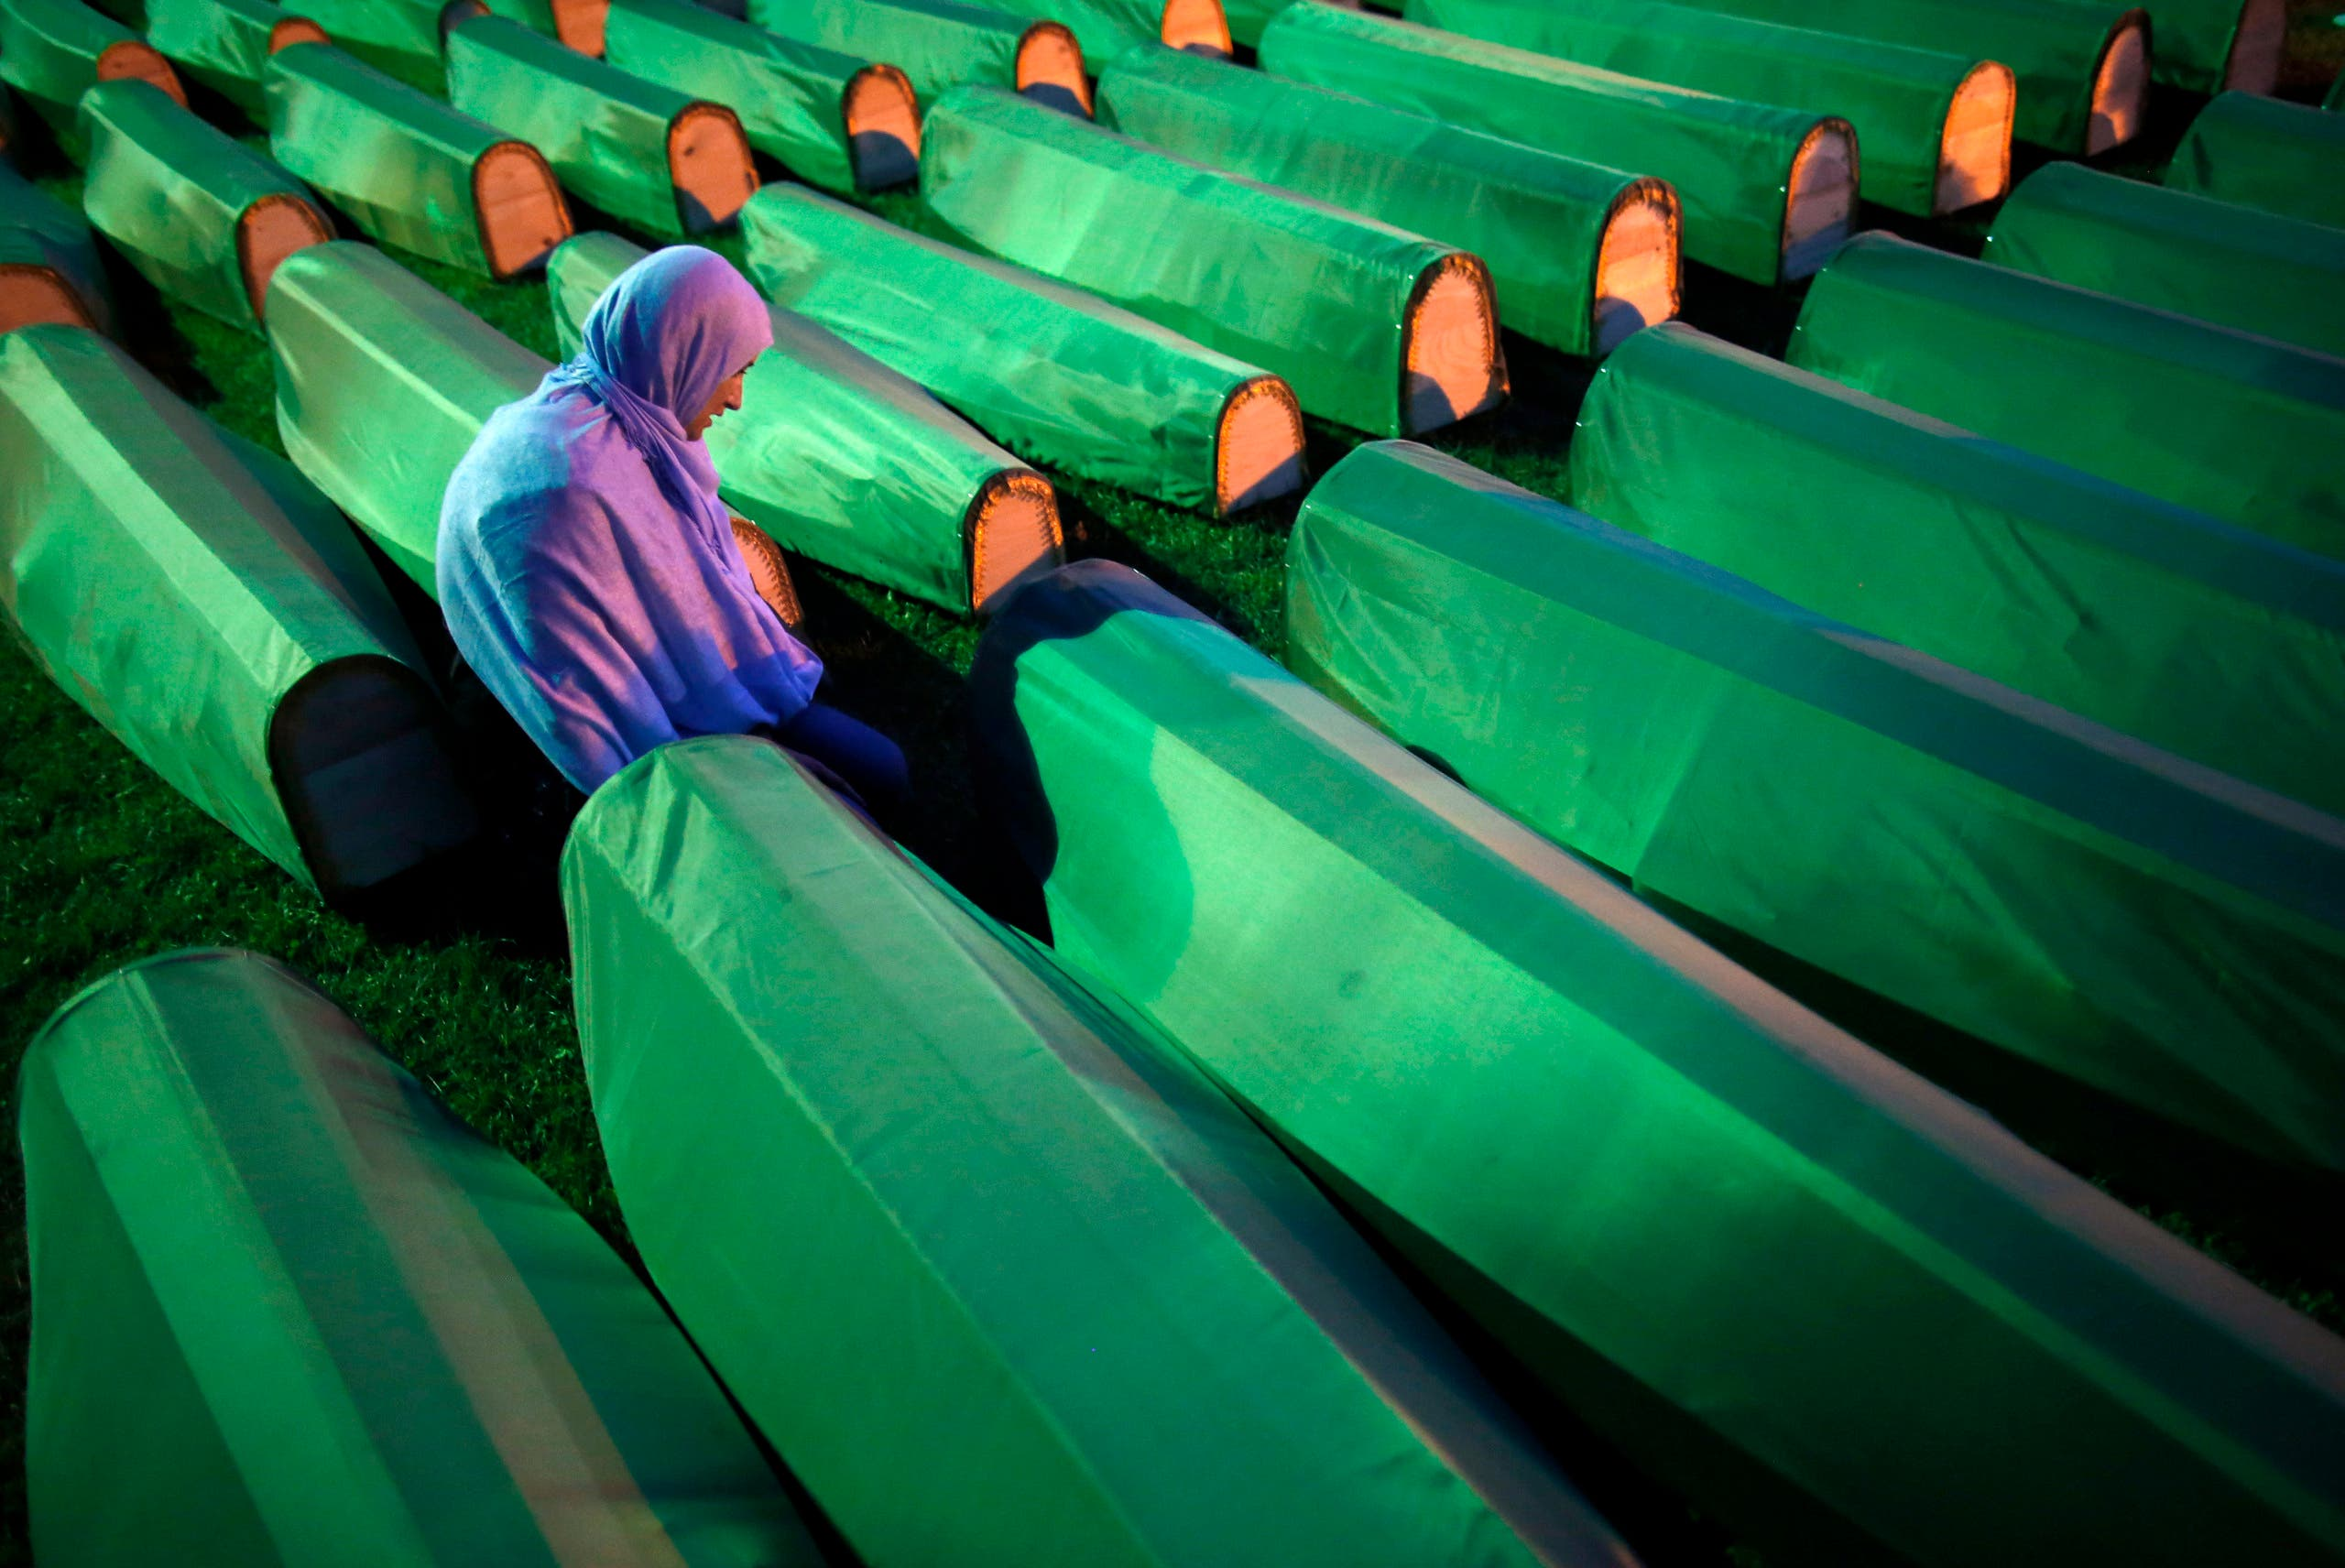 A Bosnian Muslim kneels near the coffin of a relative before a mass funeral for bodies found in a mass grave, in Kozarac, near Prijedor, July 19, 2014. (Reuters)